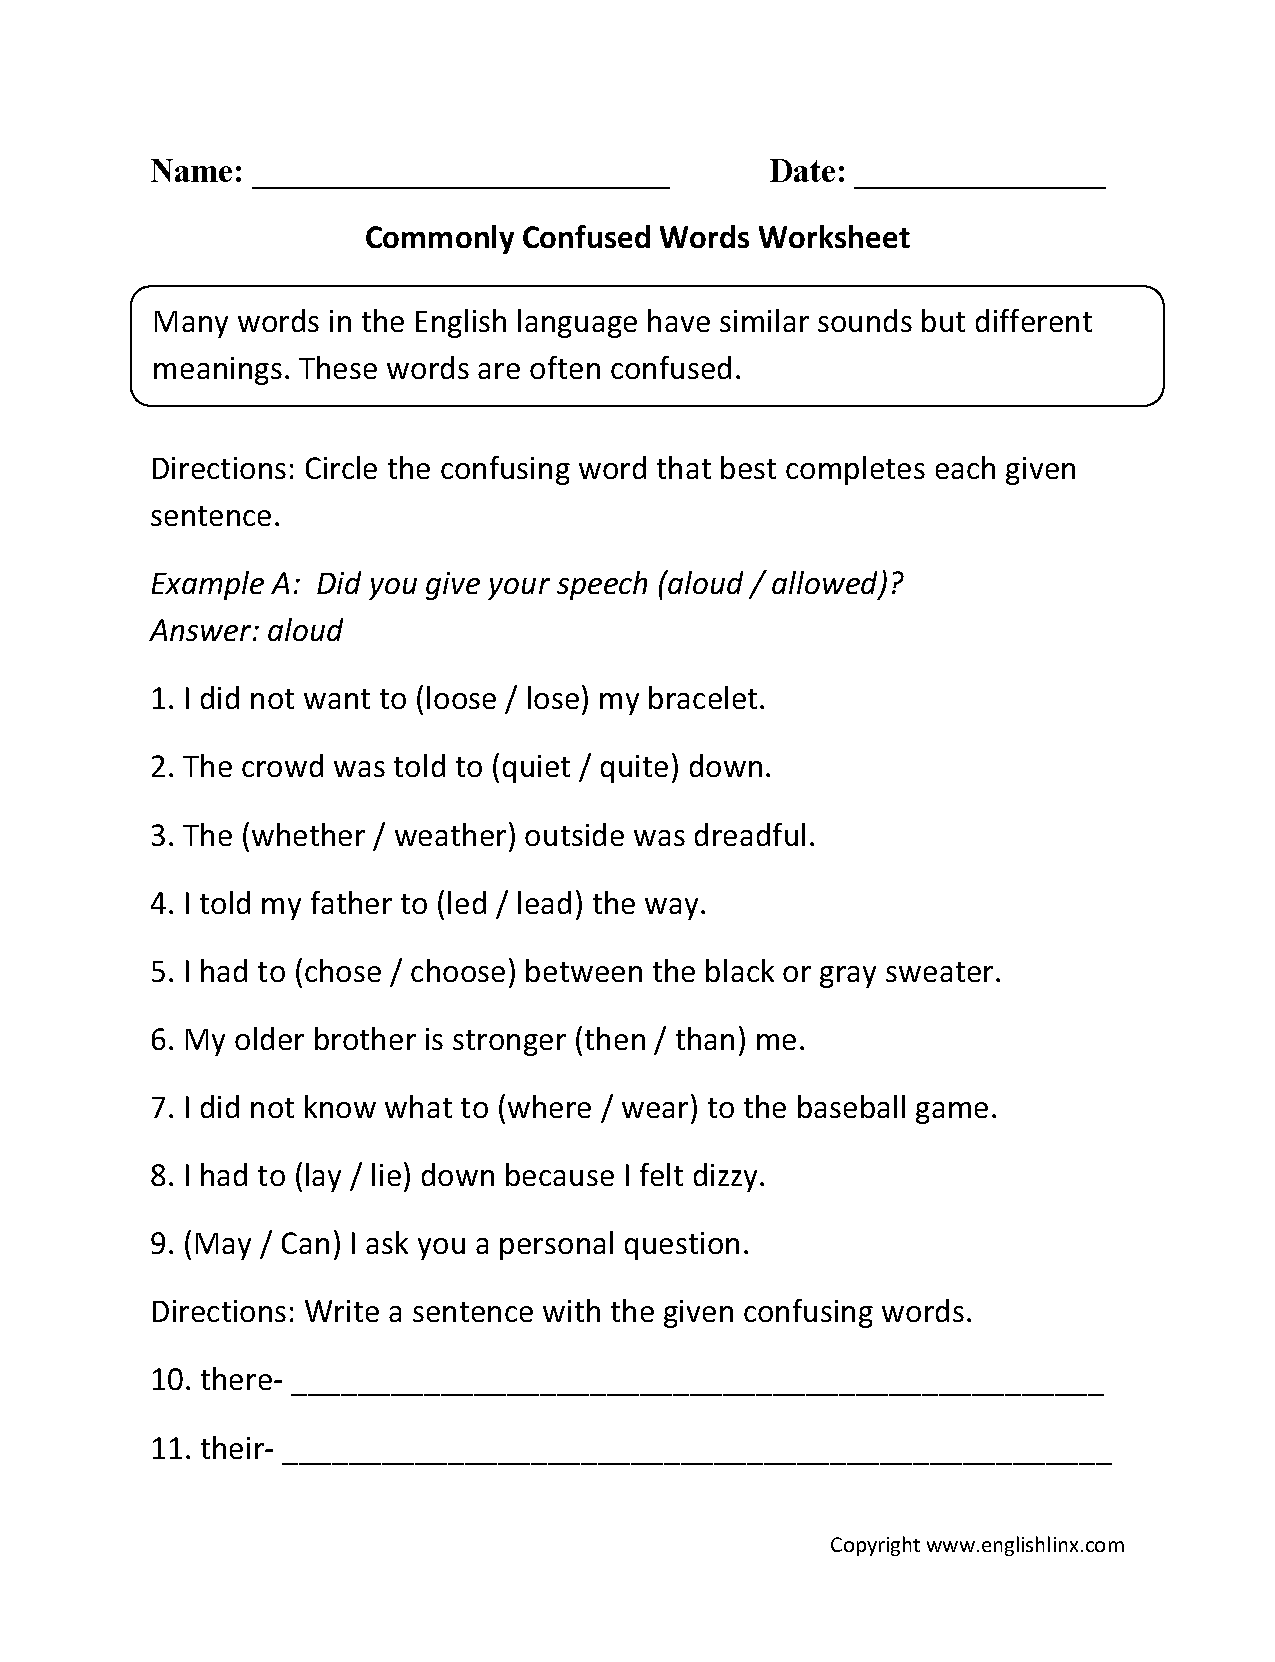 Worksheets Commonly Misused Words Worksheet word usage worksheets commonly confused words worksheet